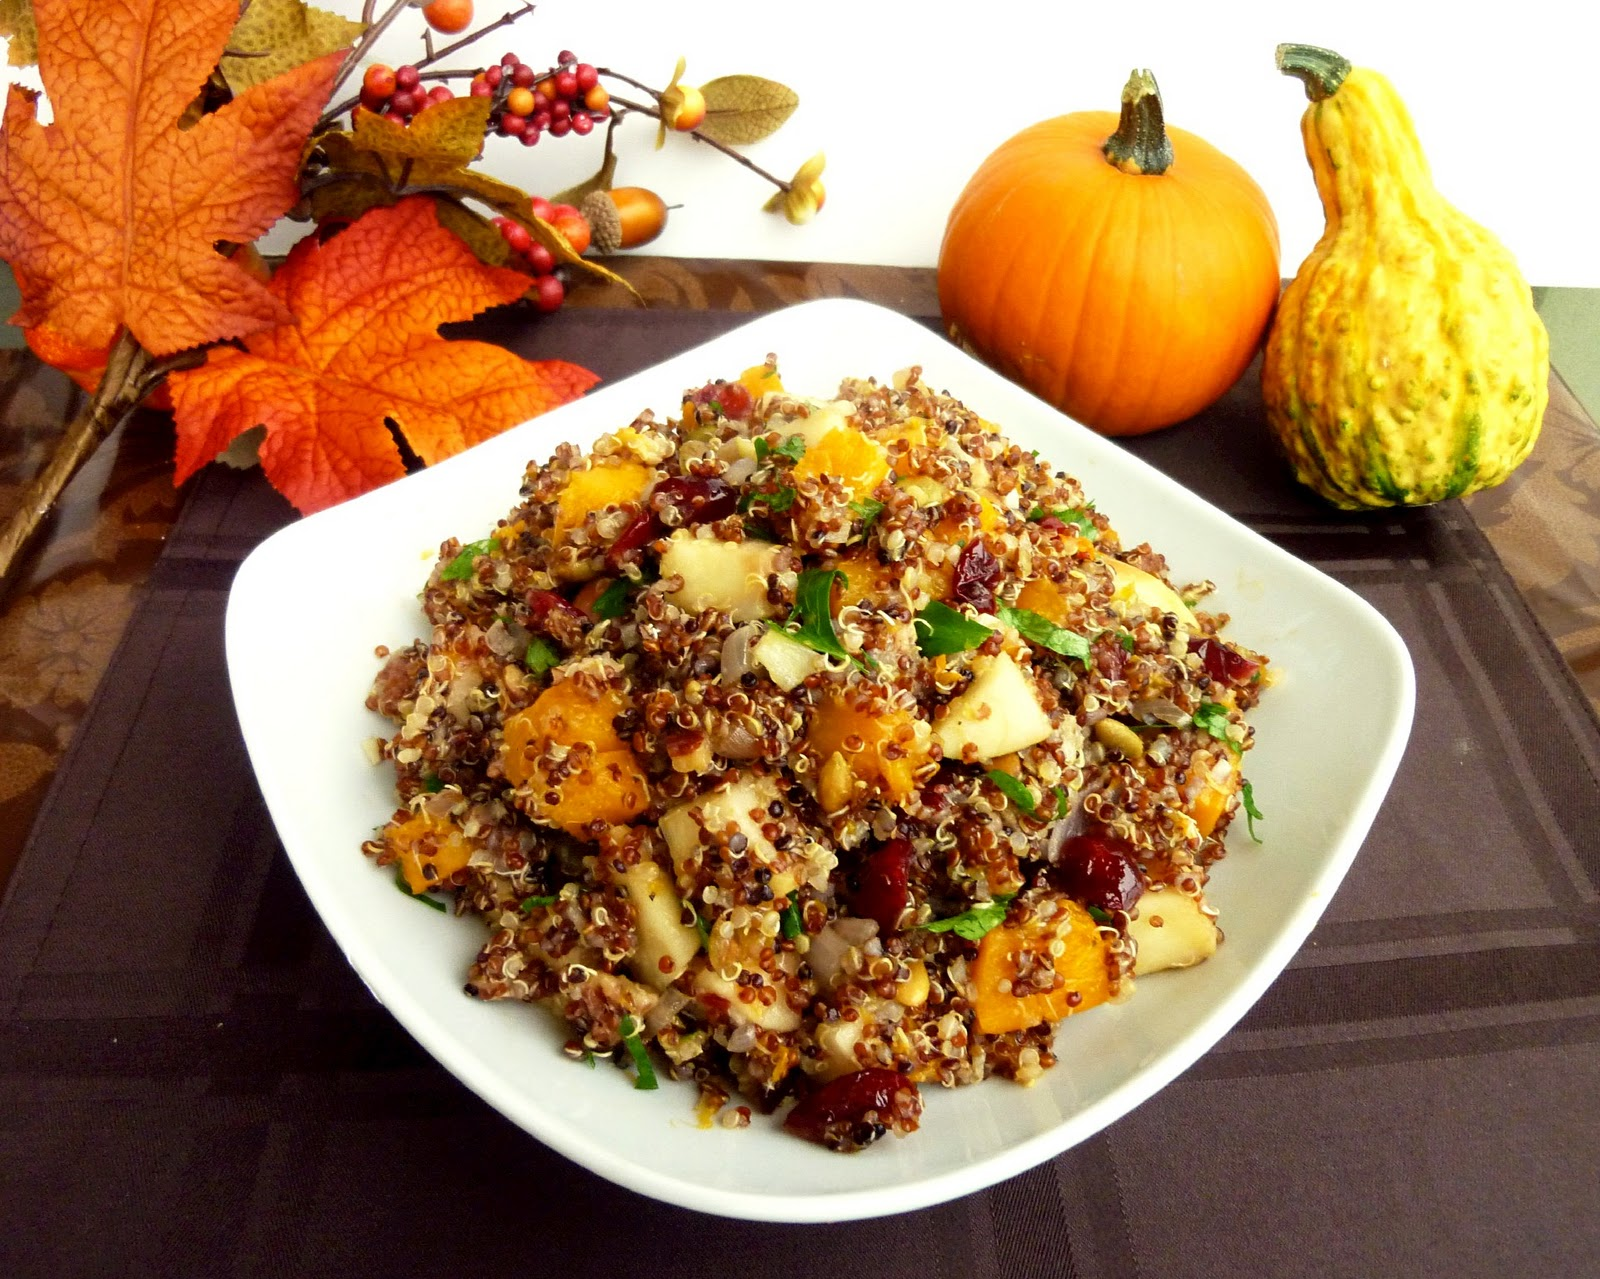 ... Spice: Thanksgiving Week - Day 6: Butternut Squash and Apple Quinoa